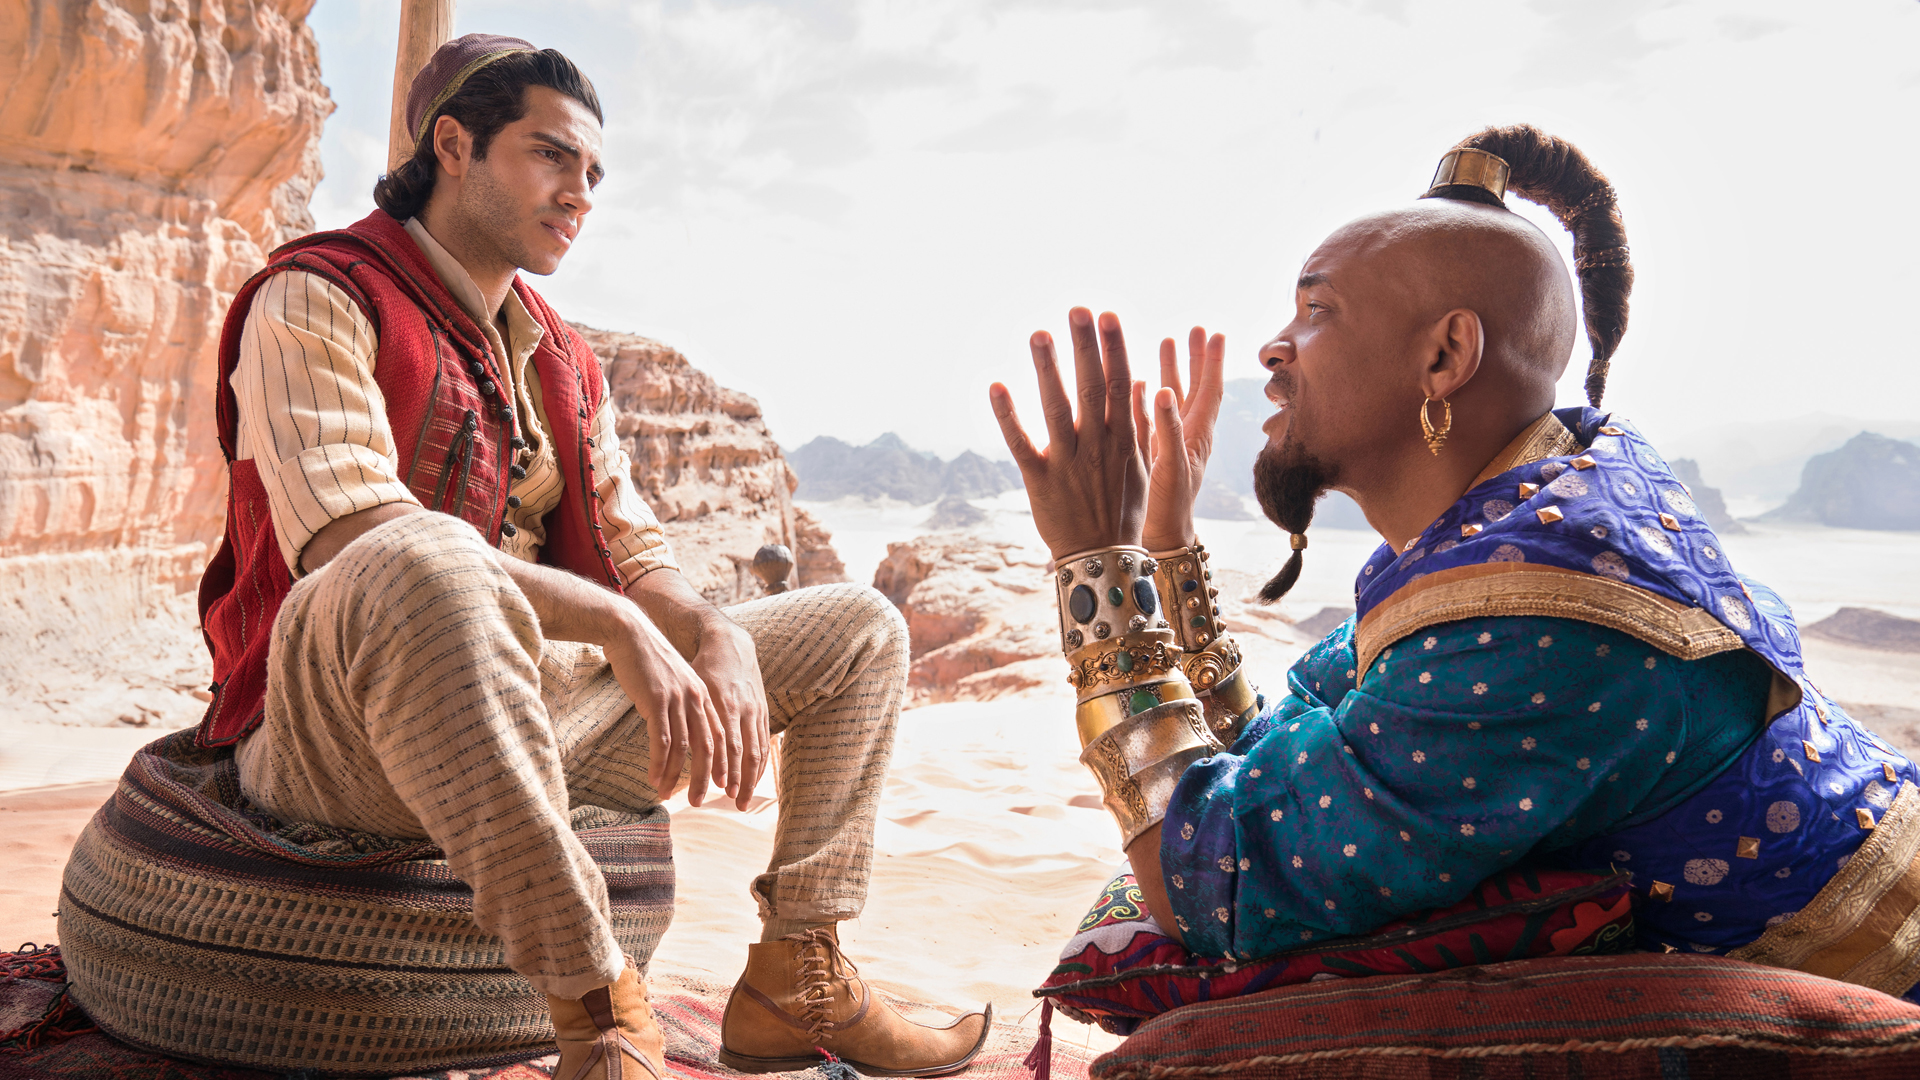 Movie Poster 2019: Aladdin (2019) Review